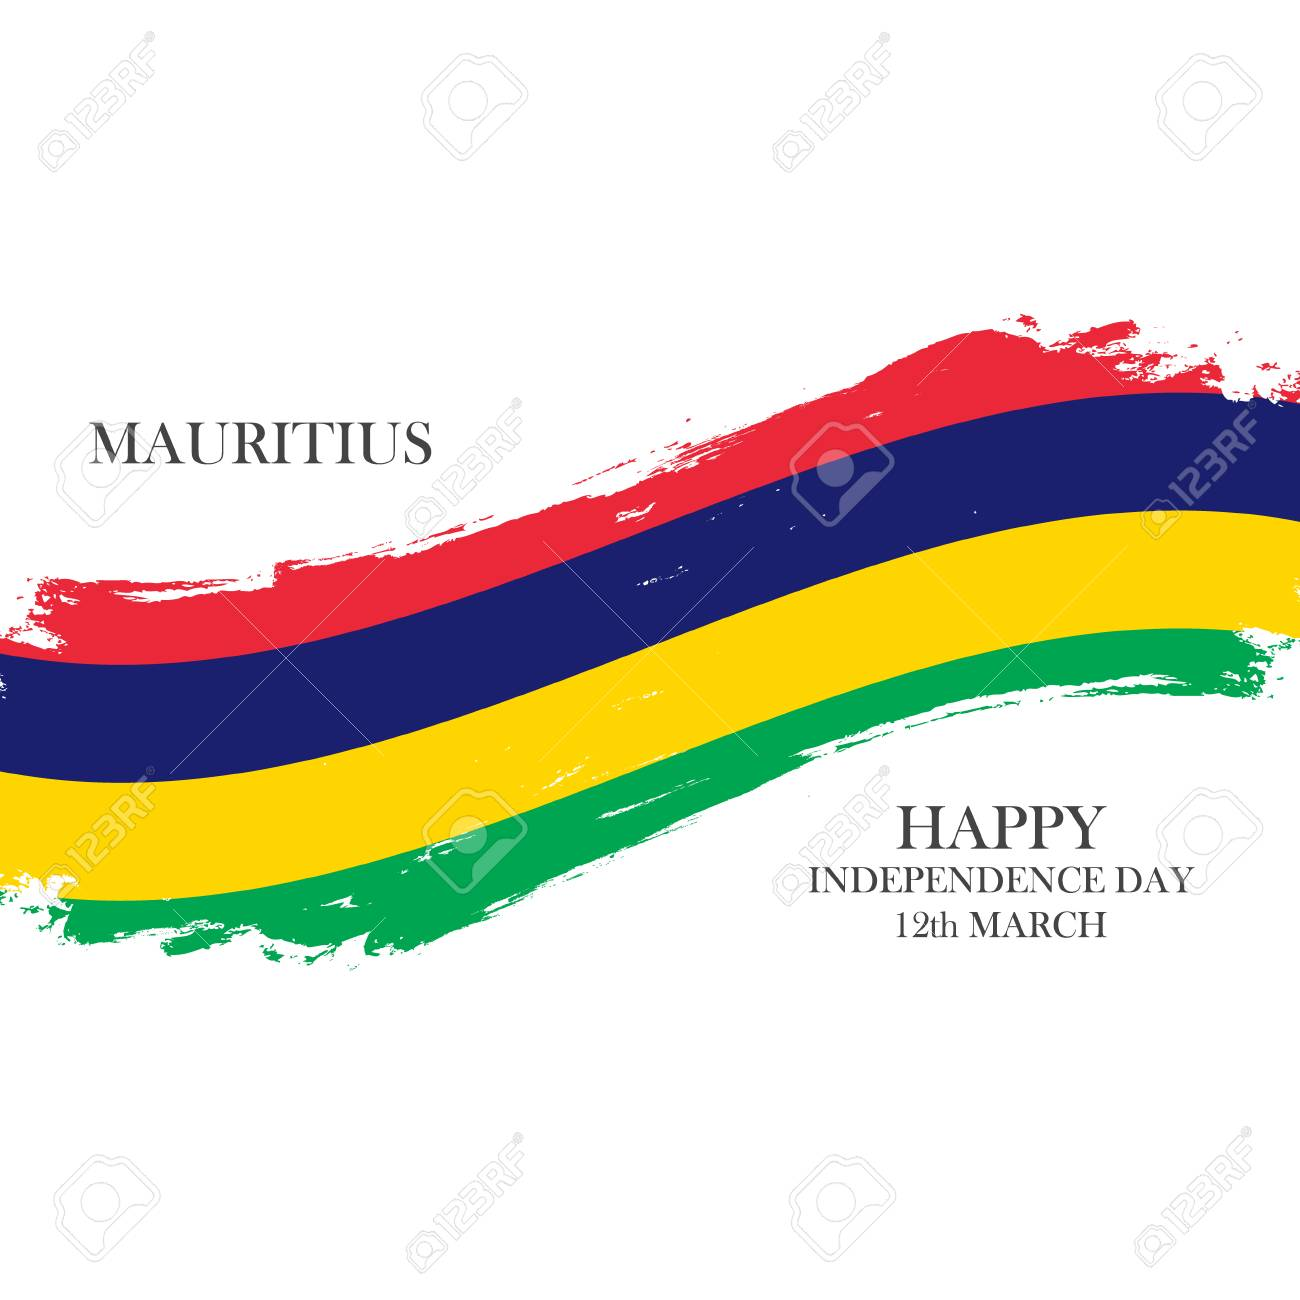 Mauritius Happy Independence Day 12 March Greeting Card With